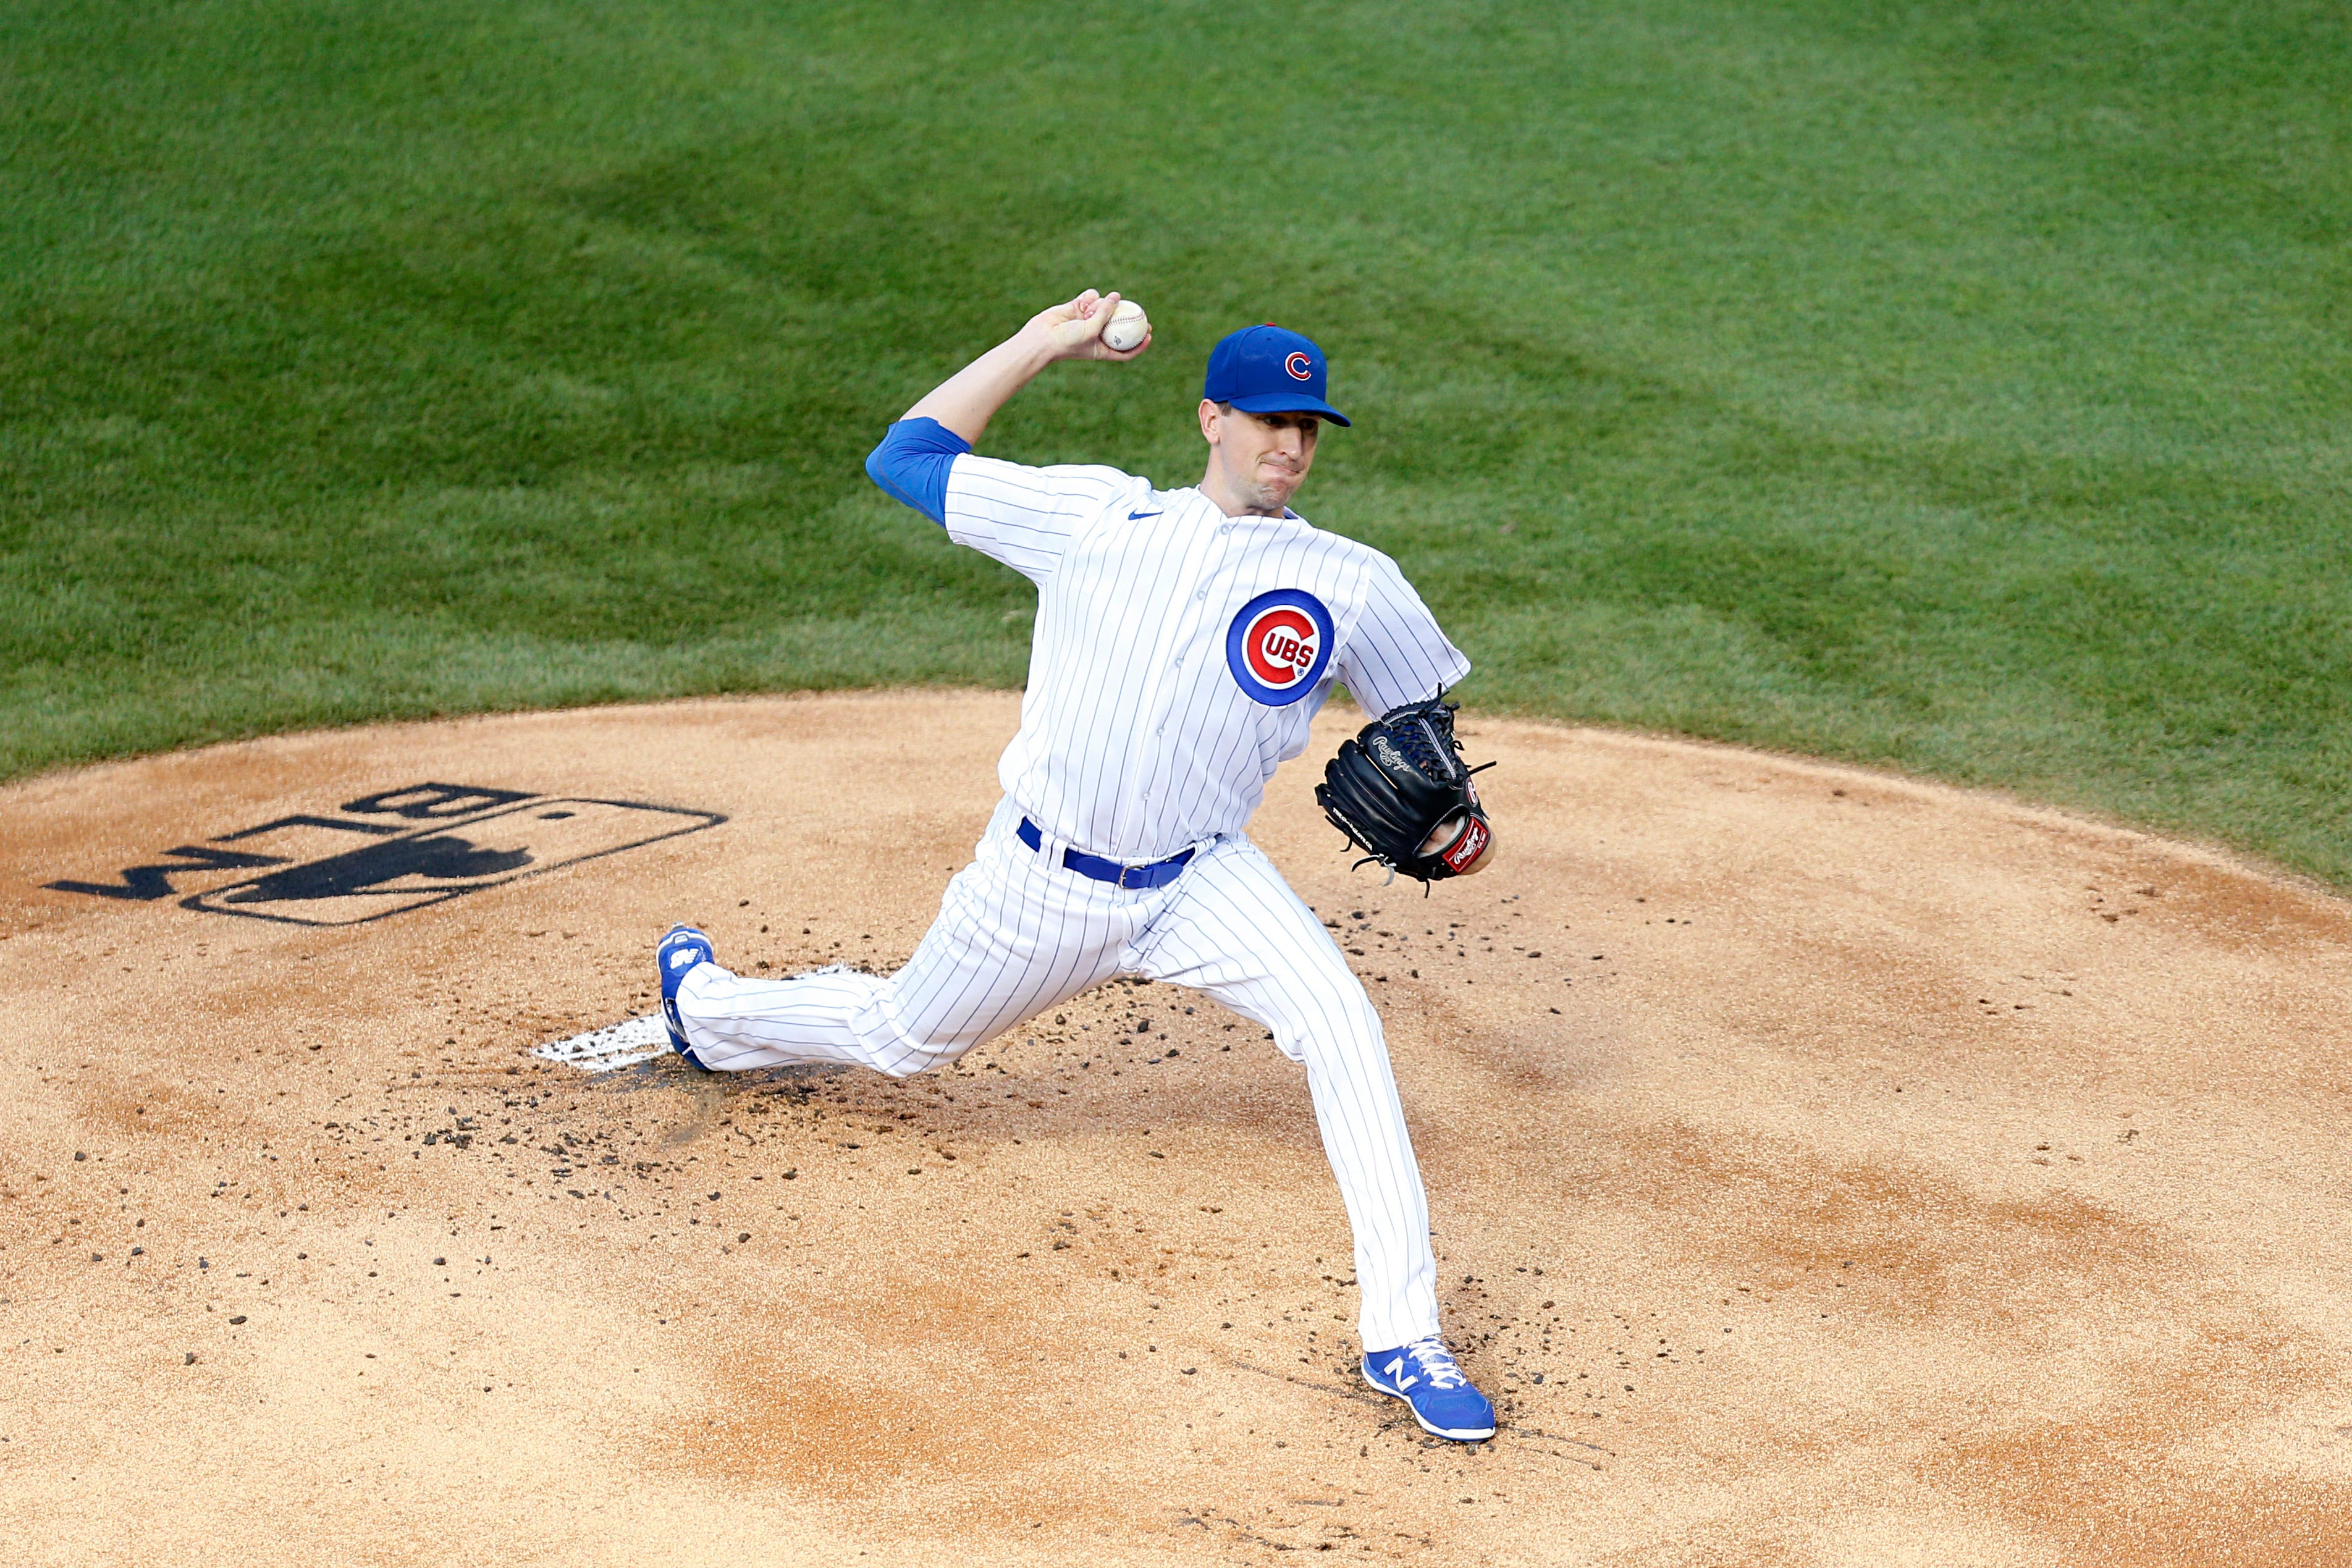 MLB Opening Day live updates: Cubs  Kyle Hendricks tosses complete game shutout vs. Brewers